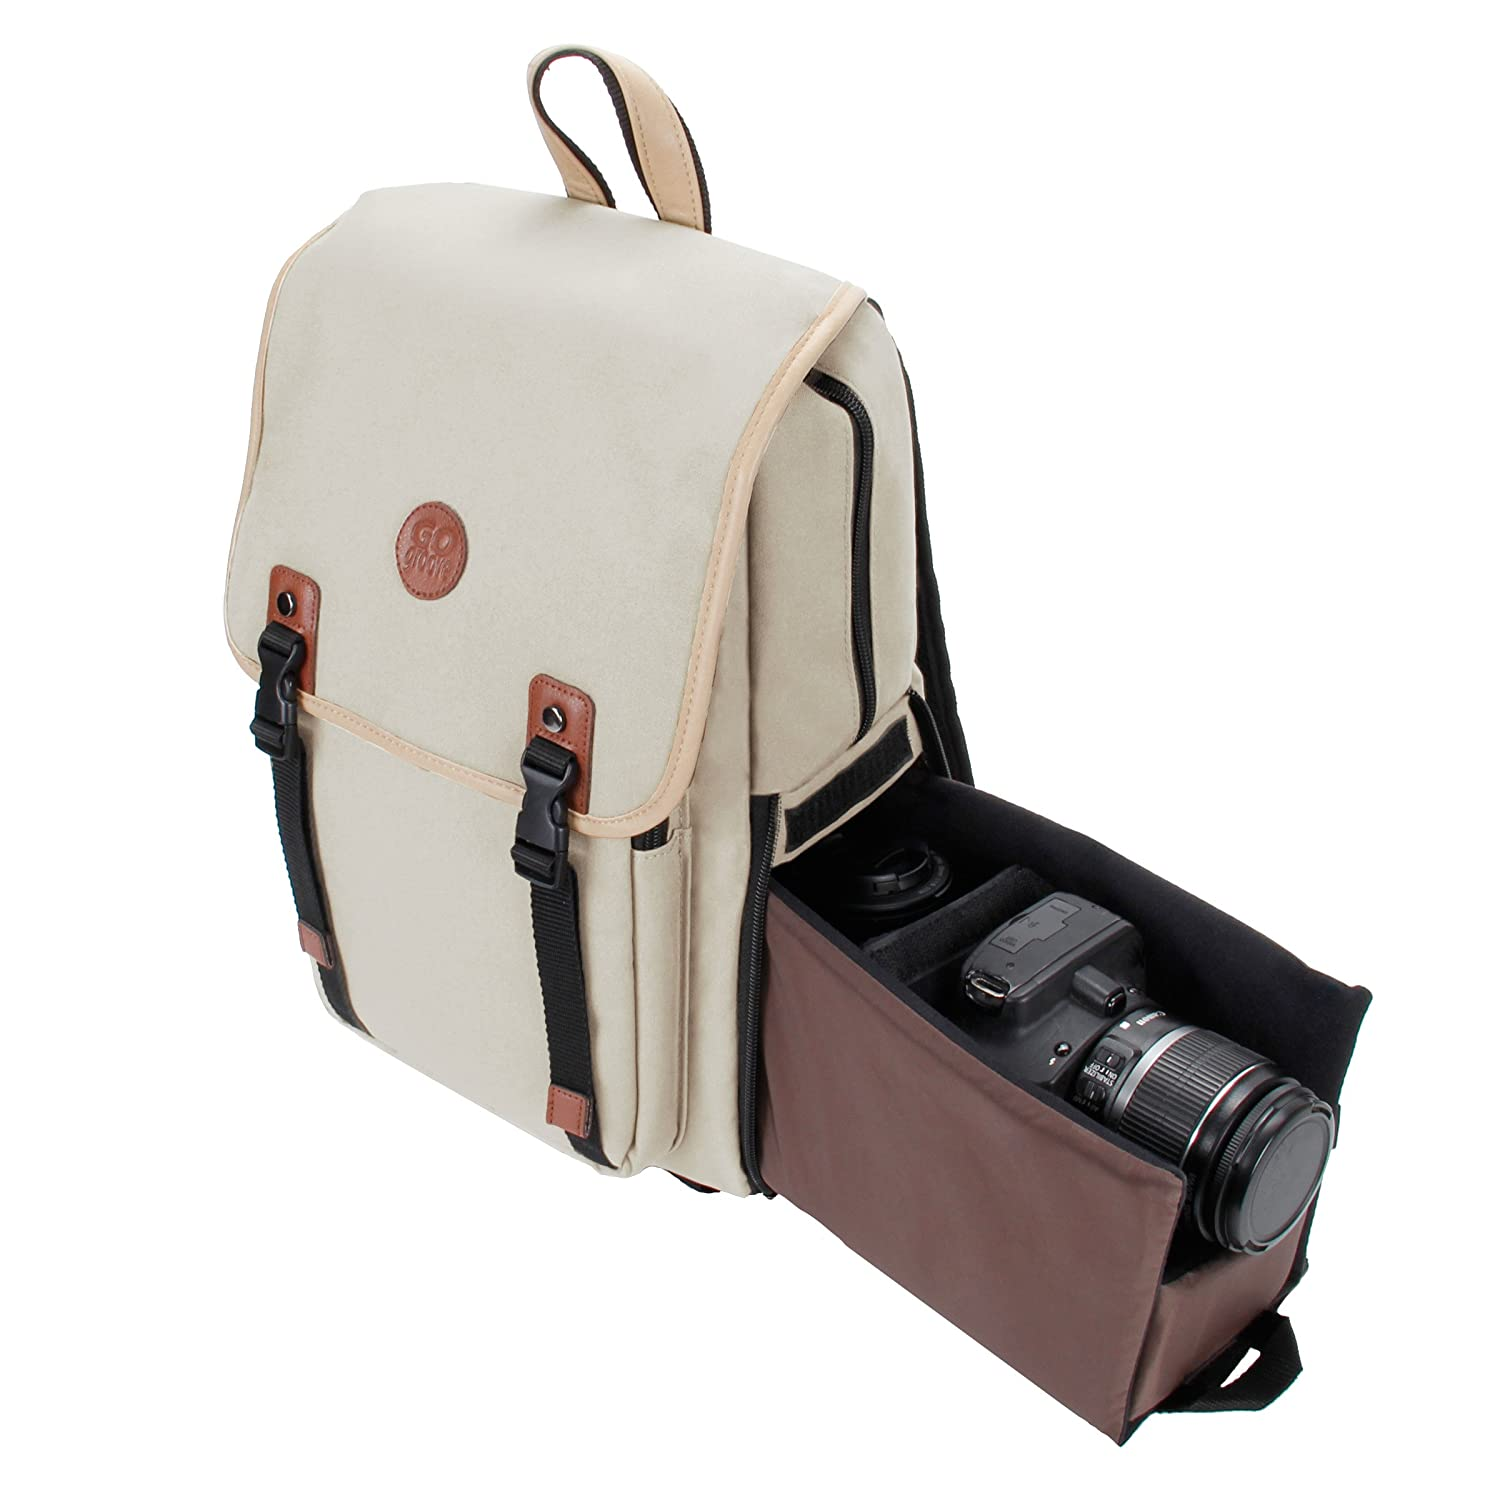 DSLR Camera Backpack by GOgroove (Mid-Volume Beige) with Interior Tablet Sleeve, Dual-Side Quick Camera Access, Phone Storage and Dual Accessory Areas for Canon, Nikon, Olympus and More